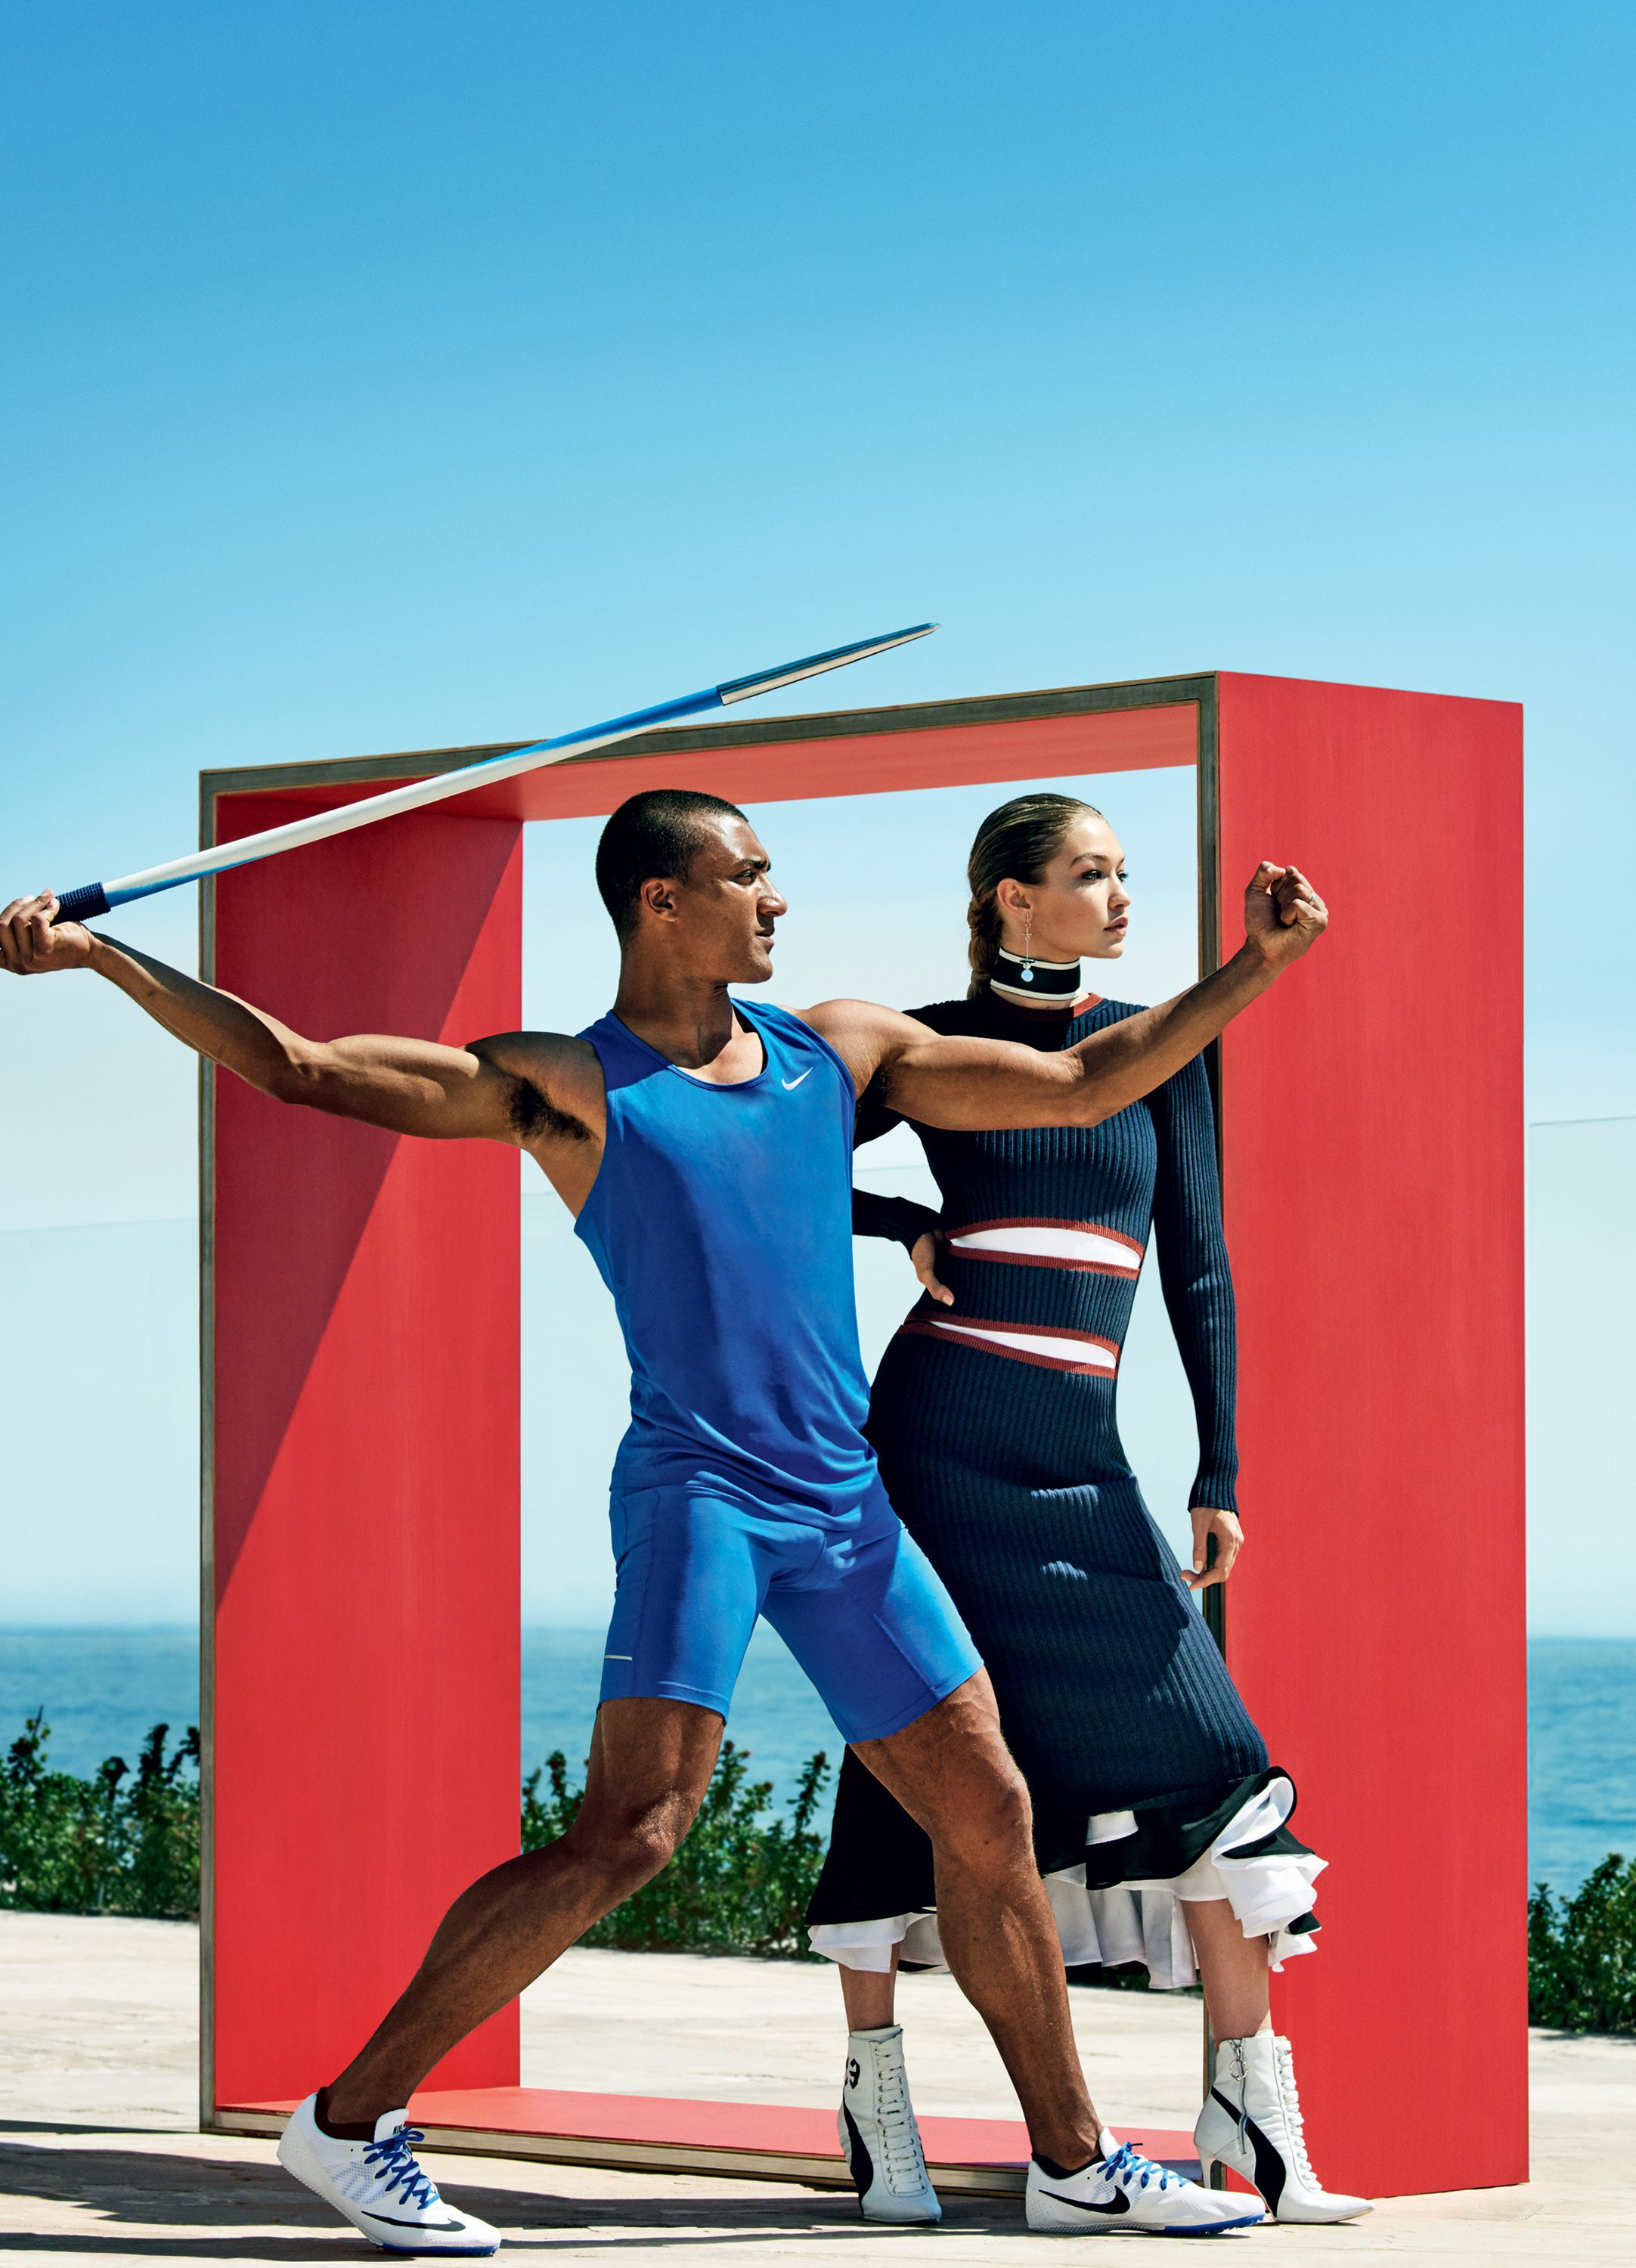 Vogue-US-August-2016-Gigi-Hadid-Ashton-Eaton-by-Mario-Testino-04